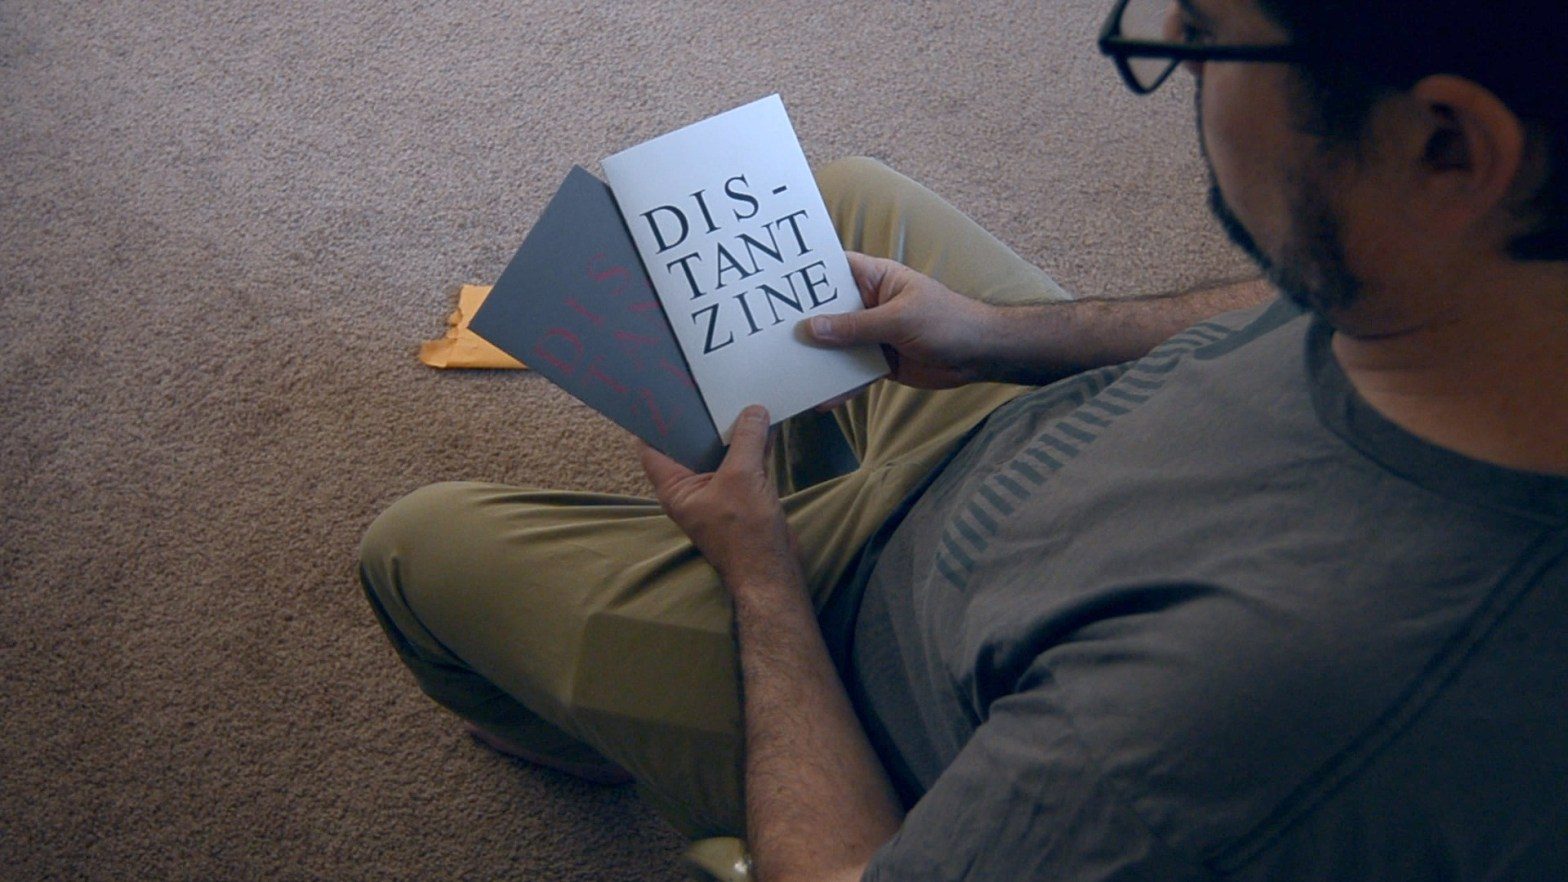 Unboxing-Distant-Zine-1-and-2